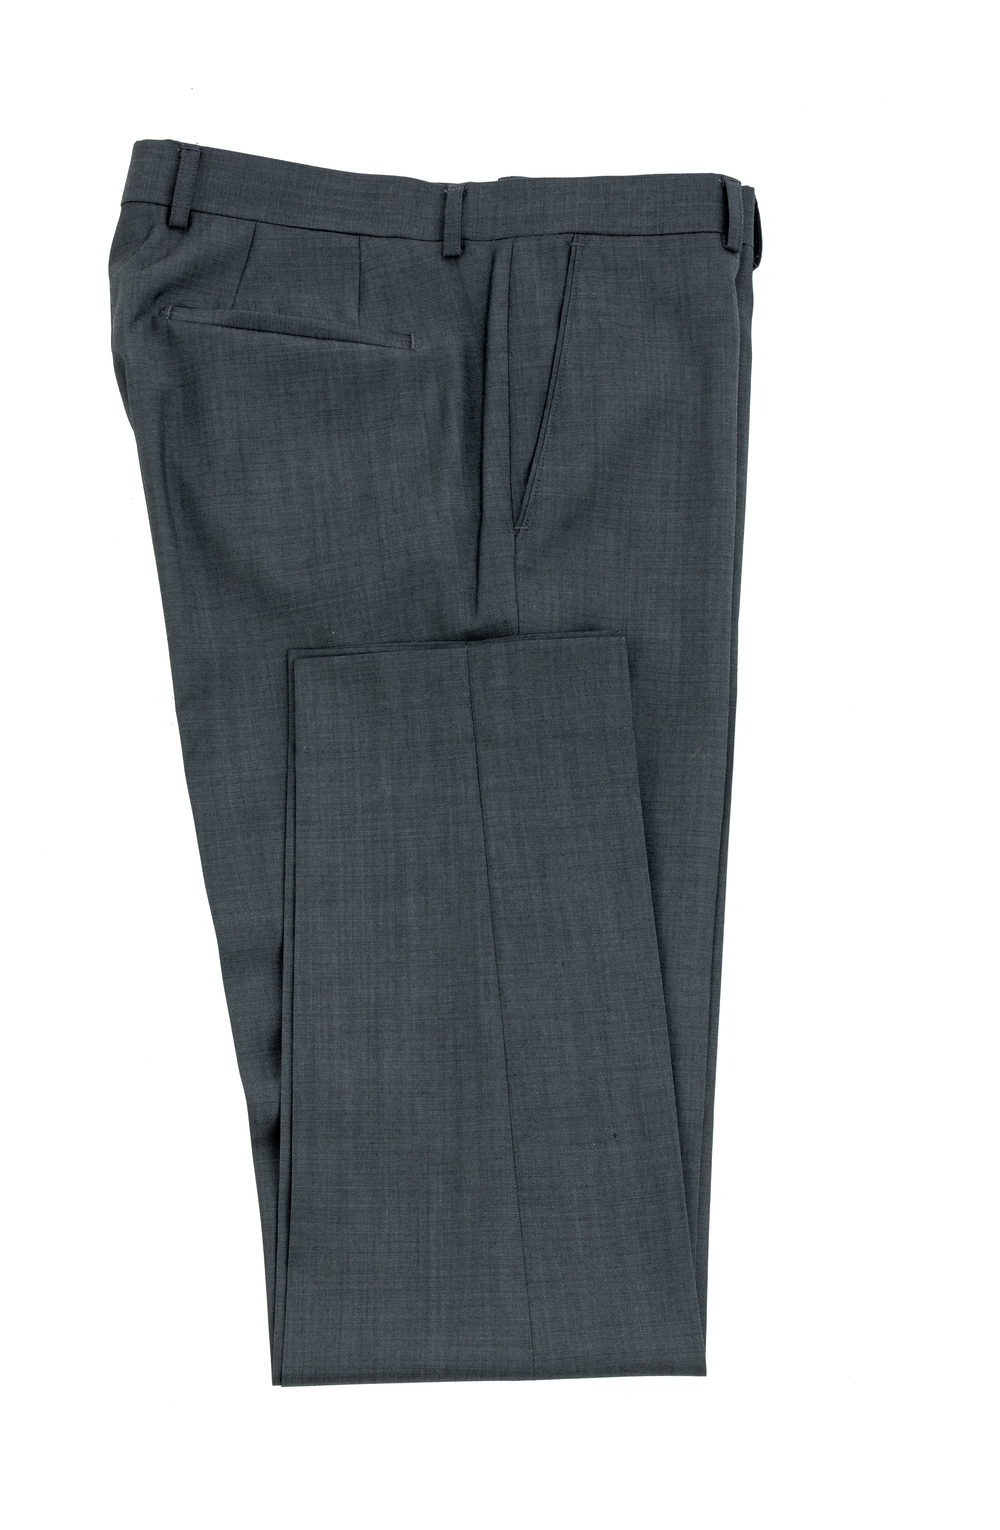 Gibson Charcoal Trouser